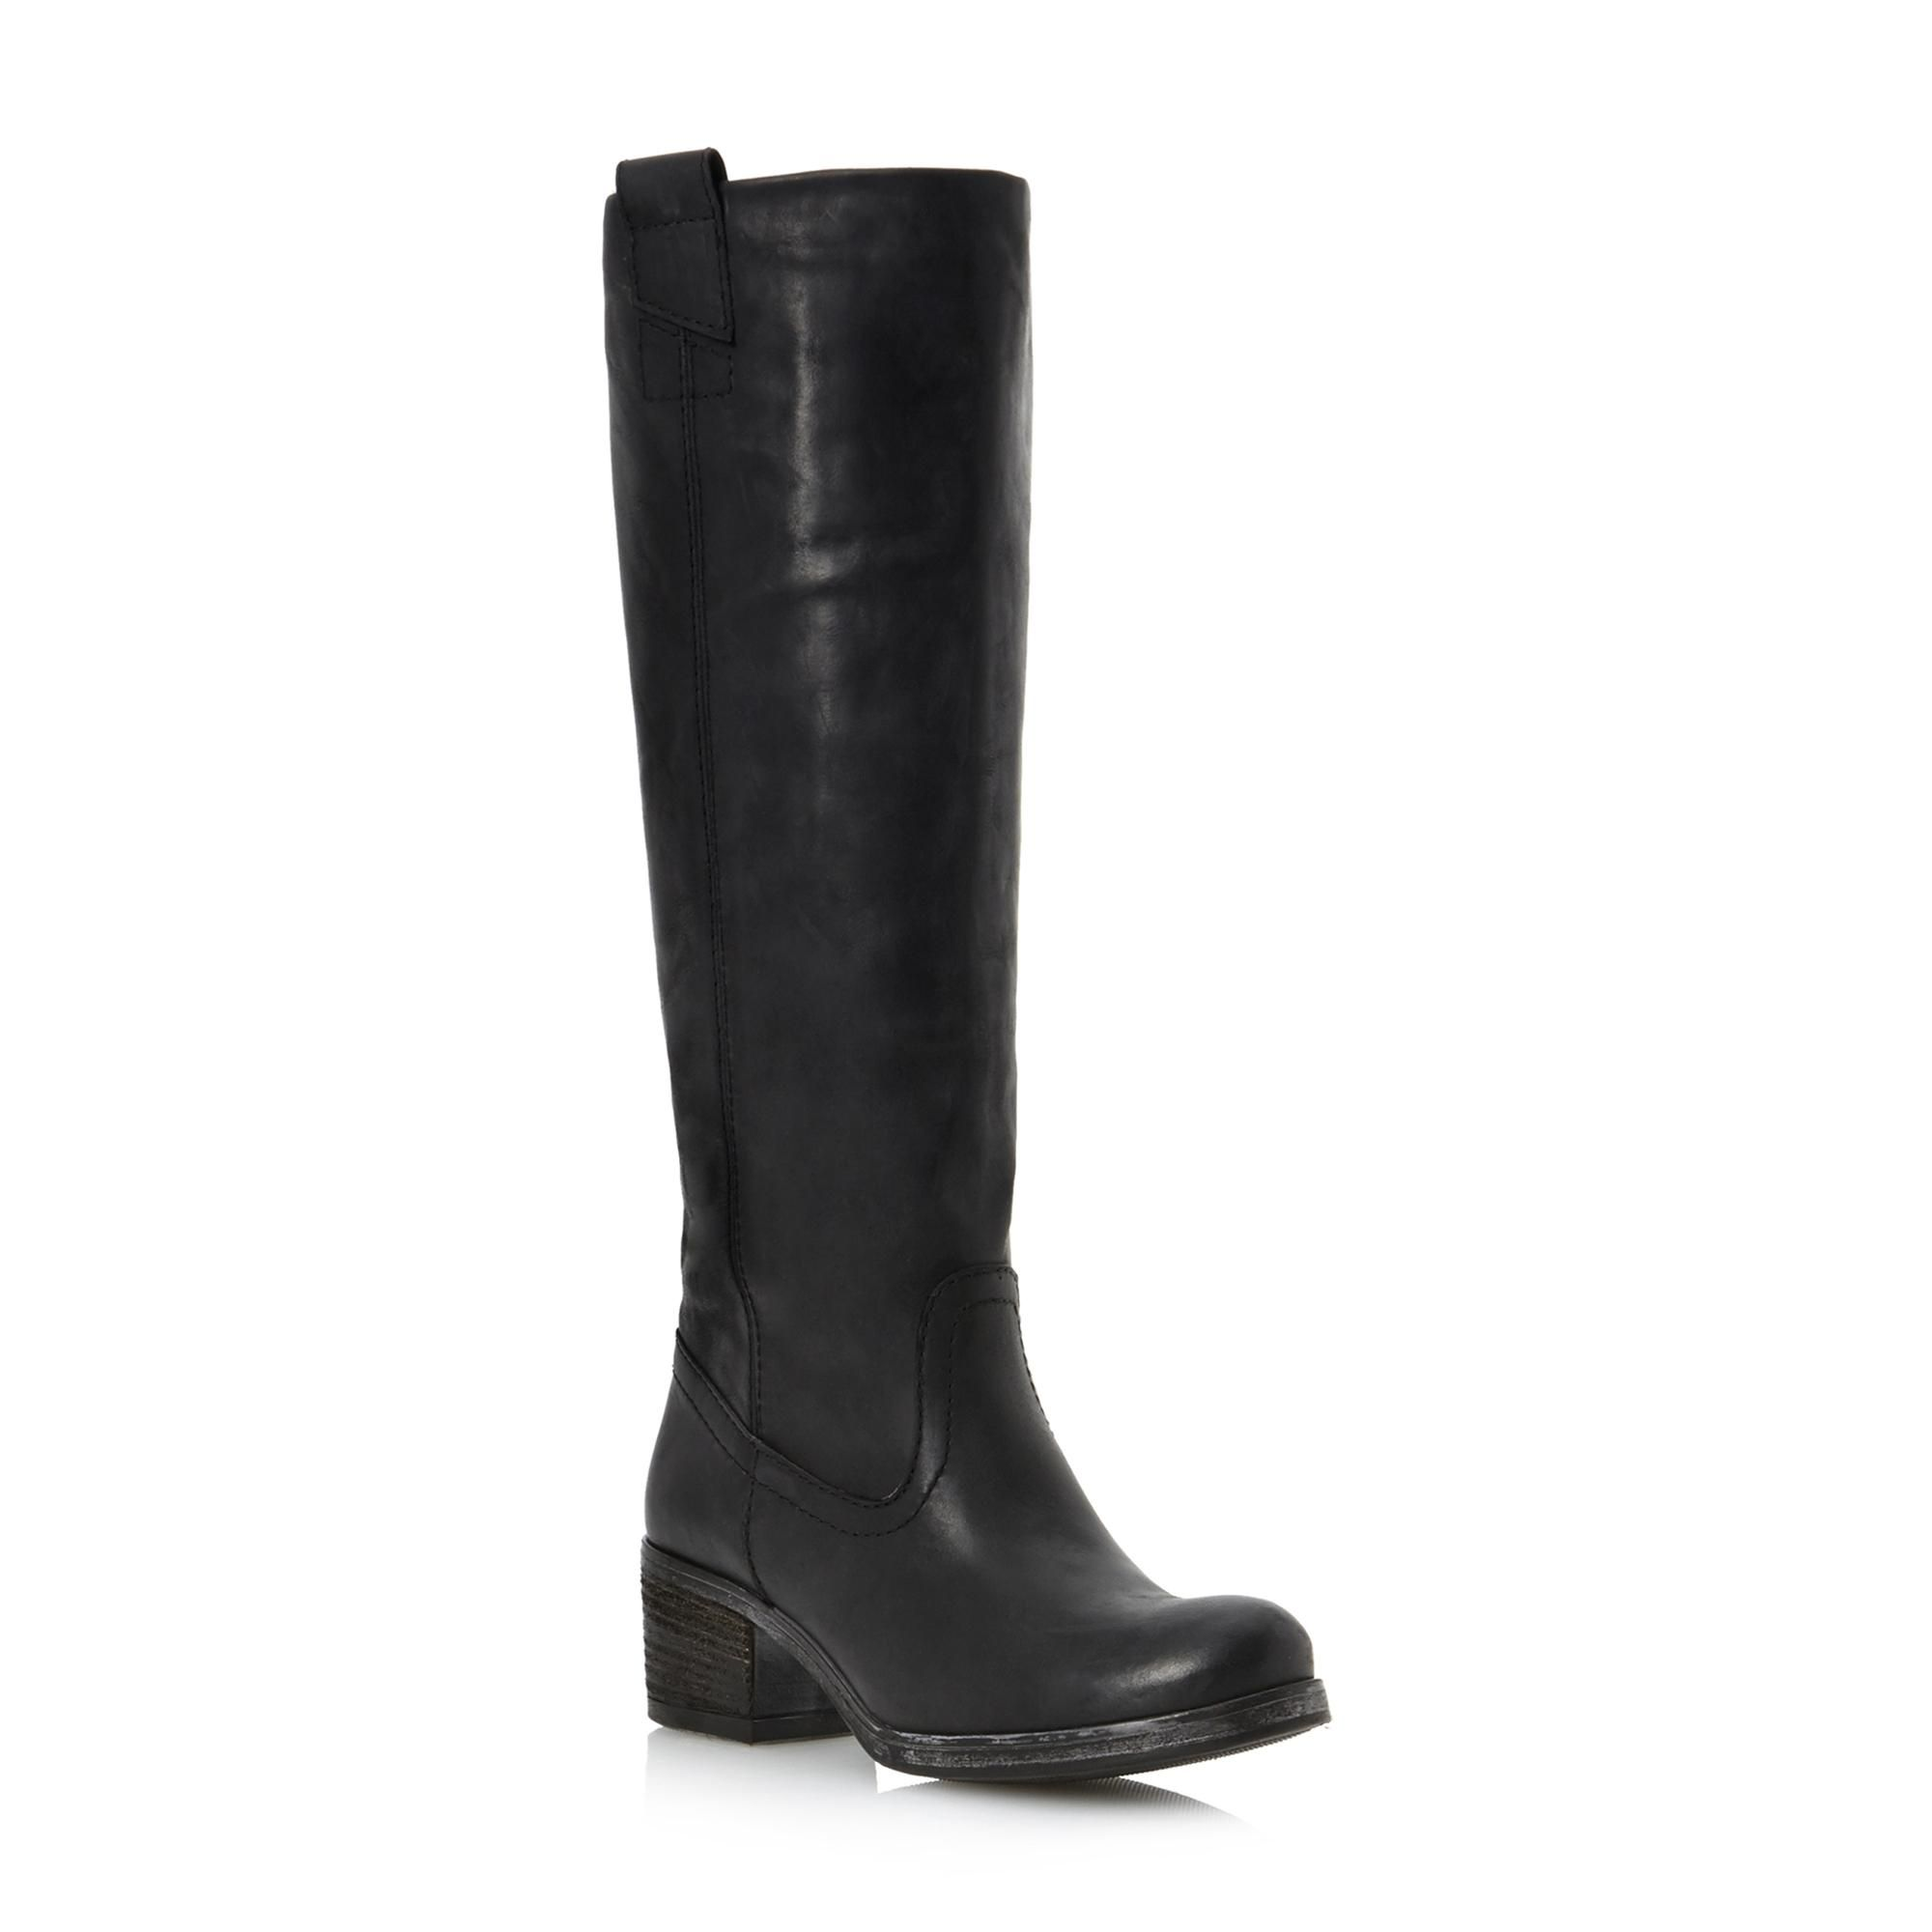 knee high boot, dune shoes online